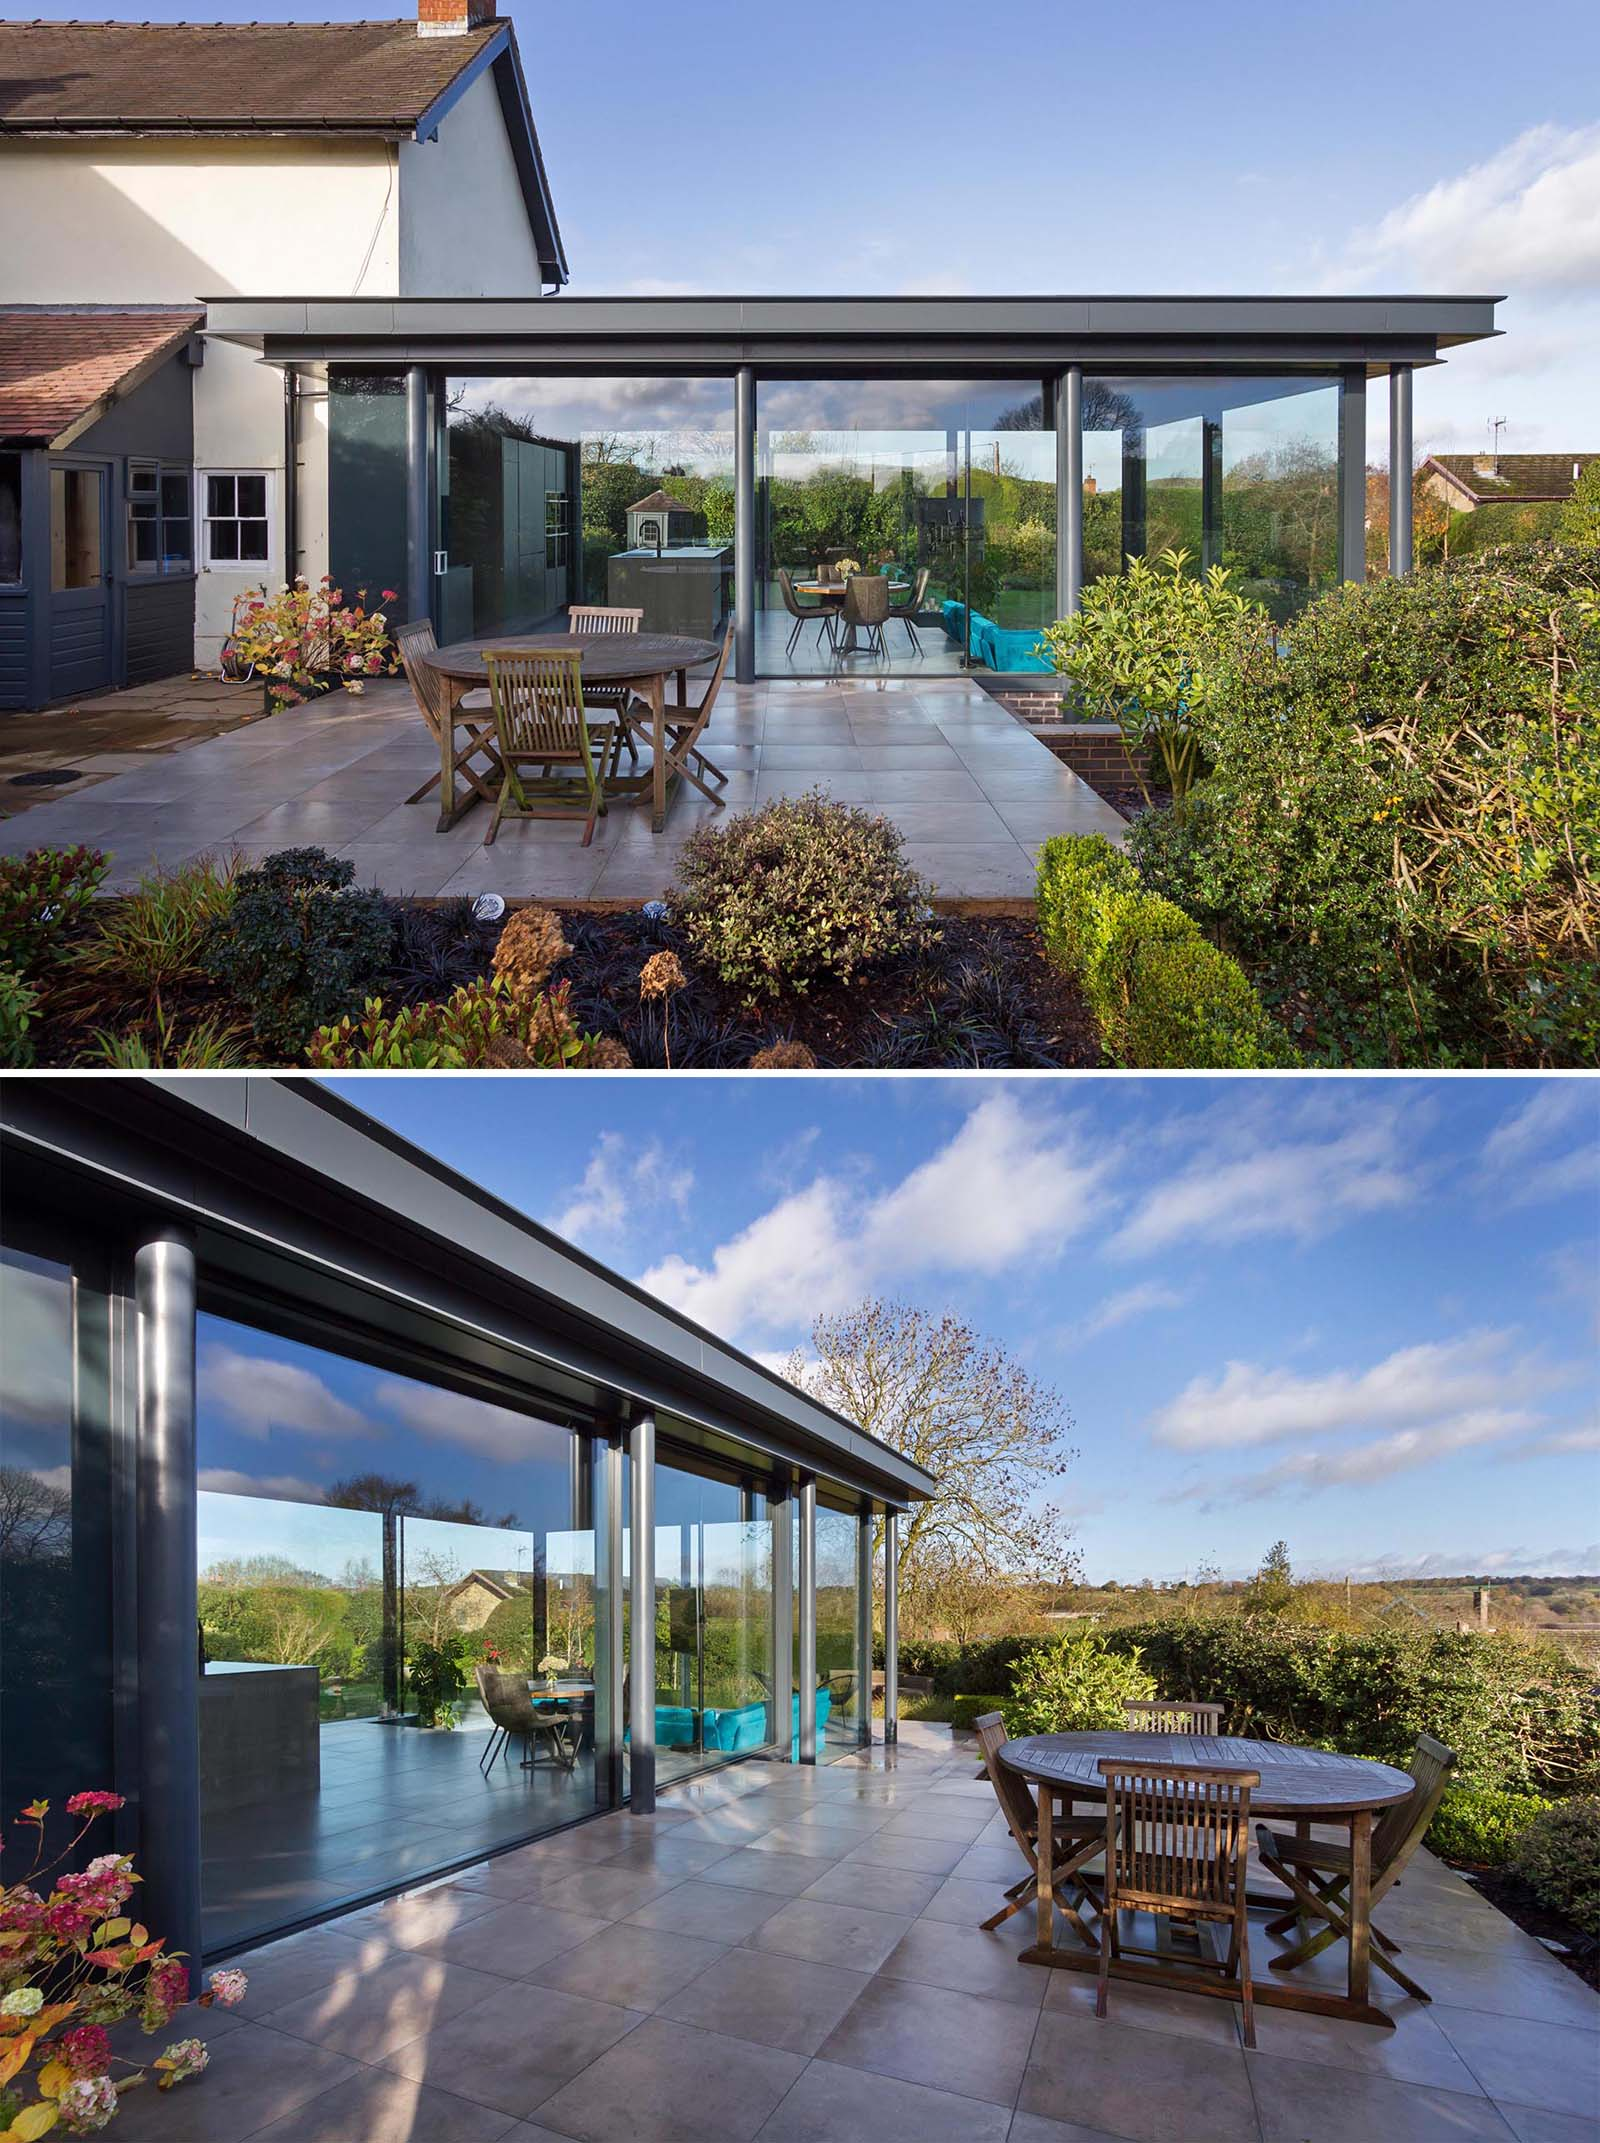 A modern home addition with glass walls has a patio that creates a space for outdoor dining, and connecting with the garden, where there's also an outdoor sofa for relaxing.